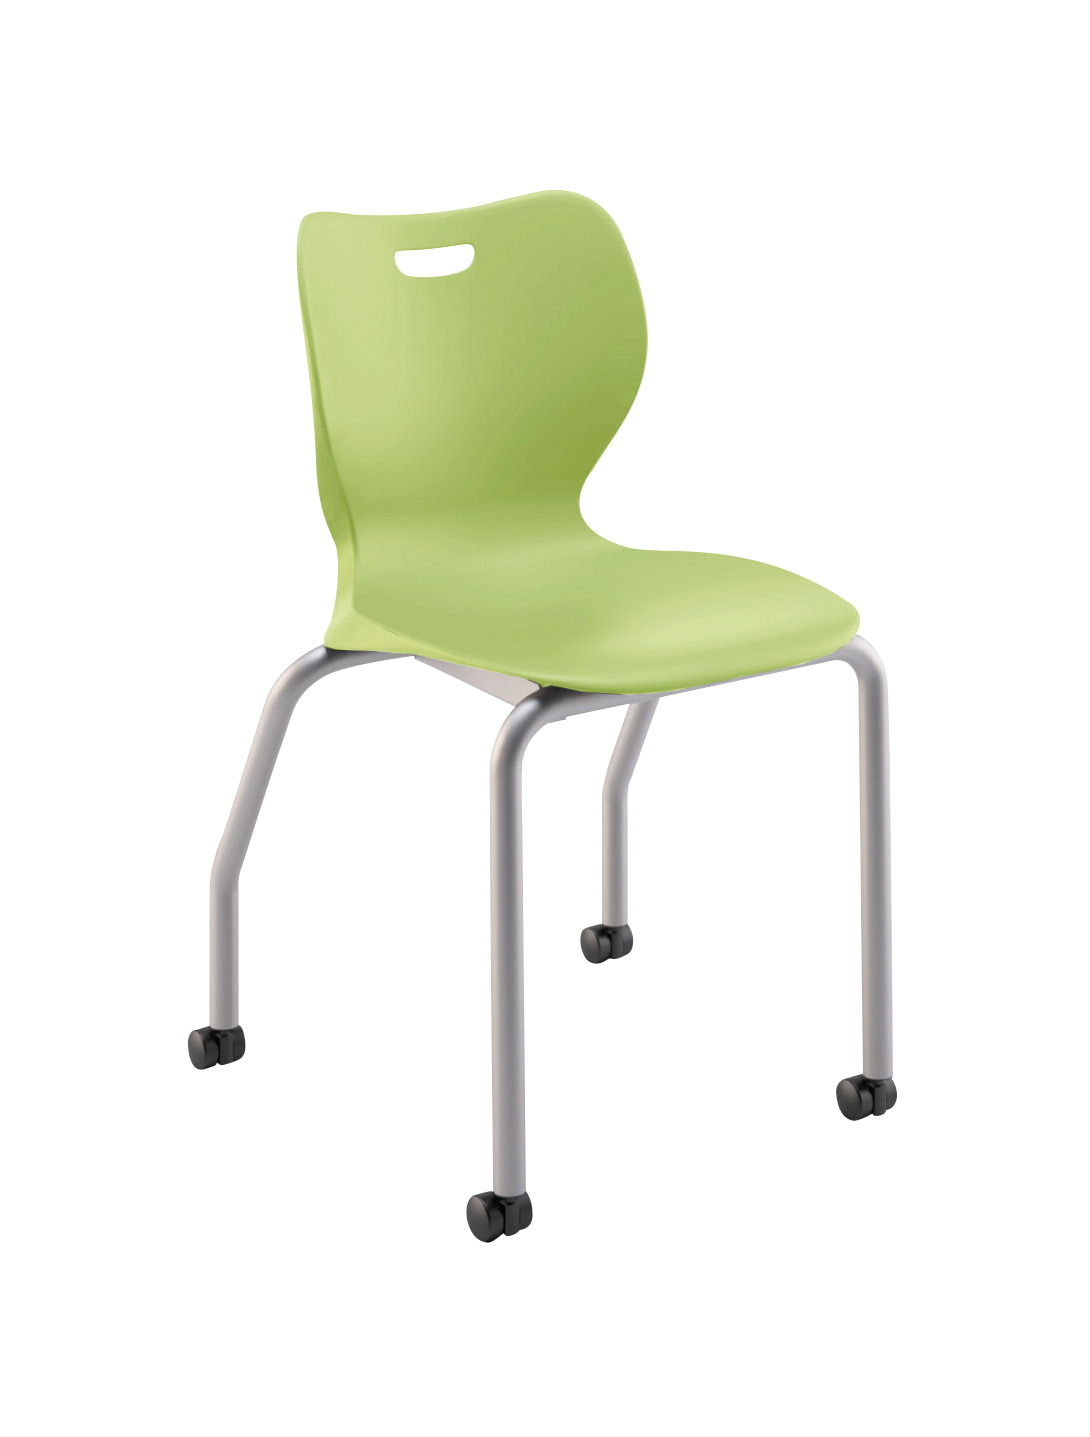 Student Chair - SCHOOL SPECIALTY MARKETPLACE